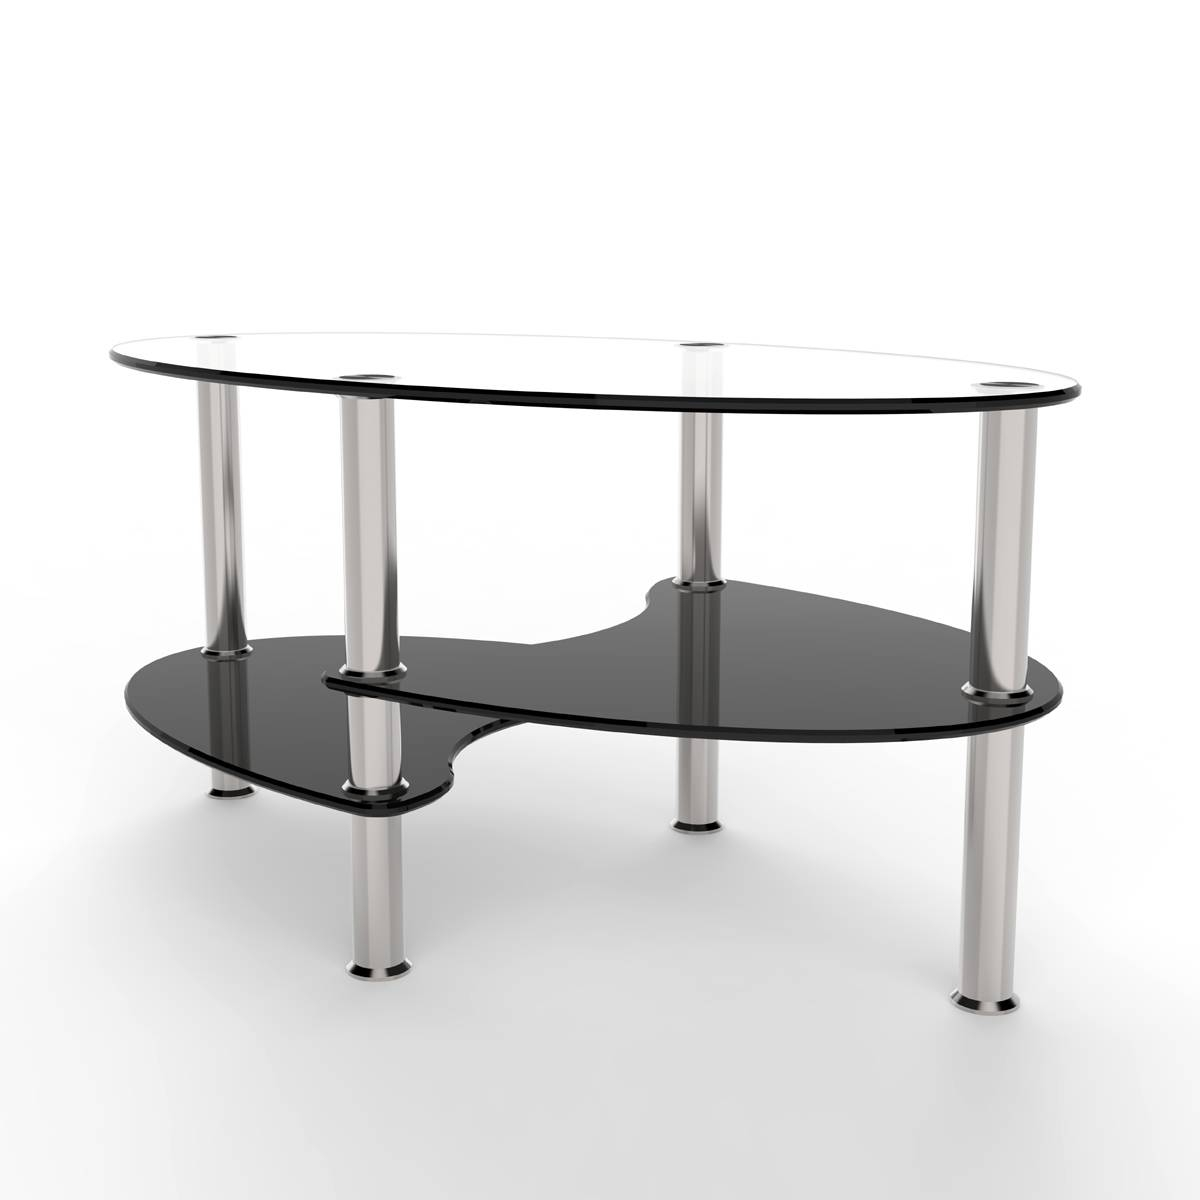 Superior Cleveland 38 Inch Glass Coffee Table With Black Mesh Magazine Holder Inside  Dark Glass Coffee Tables